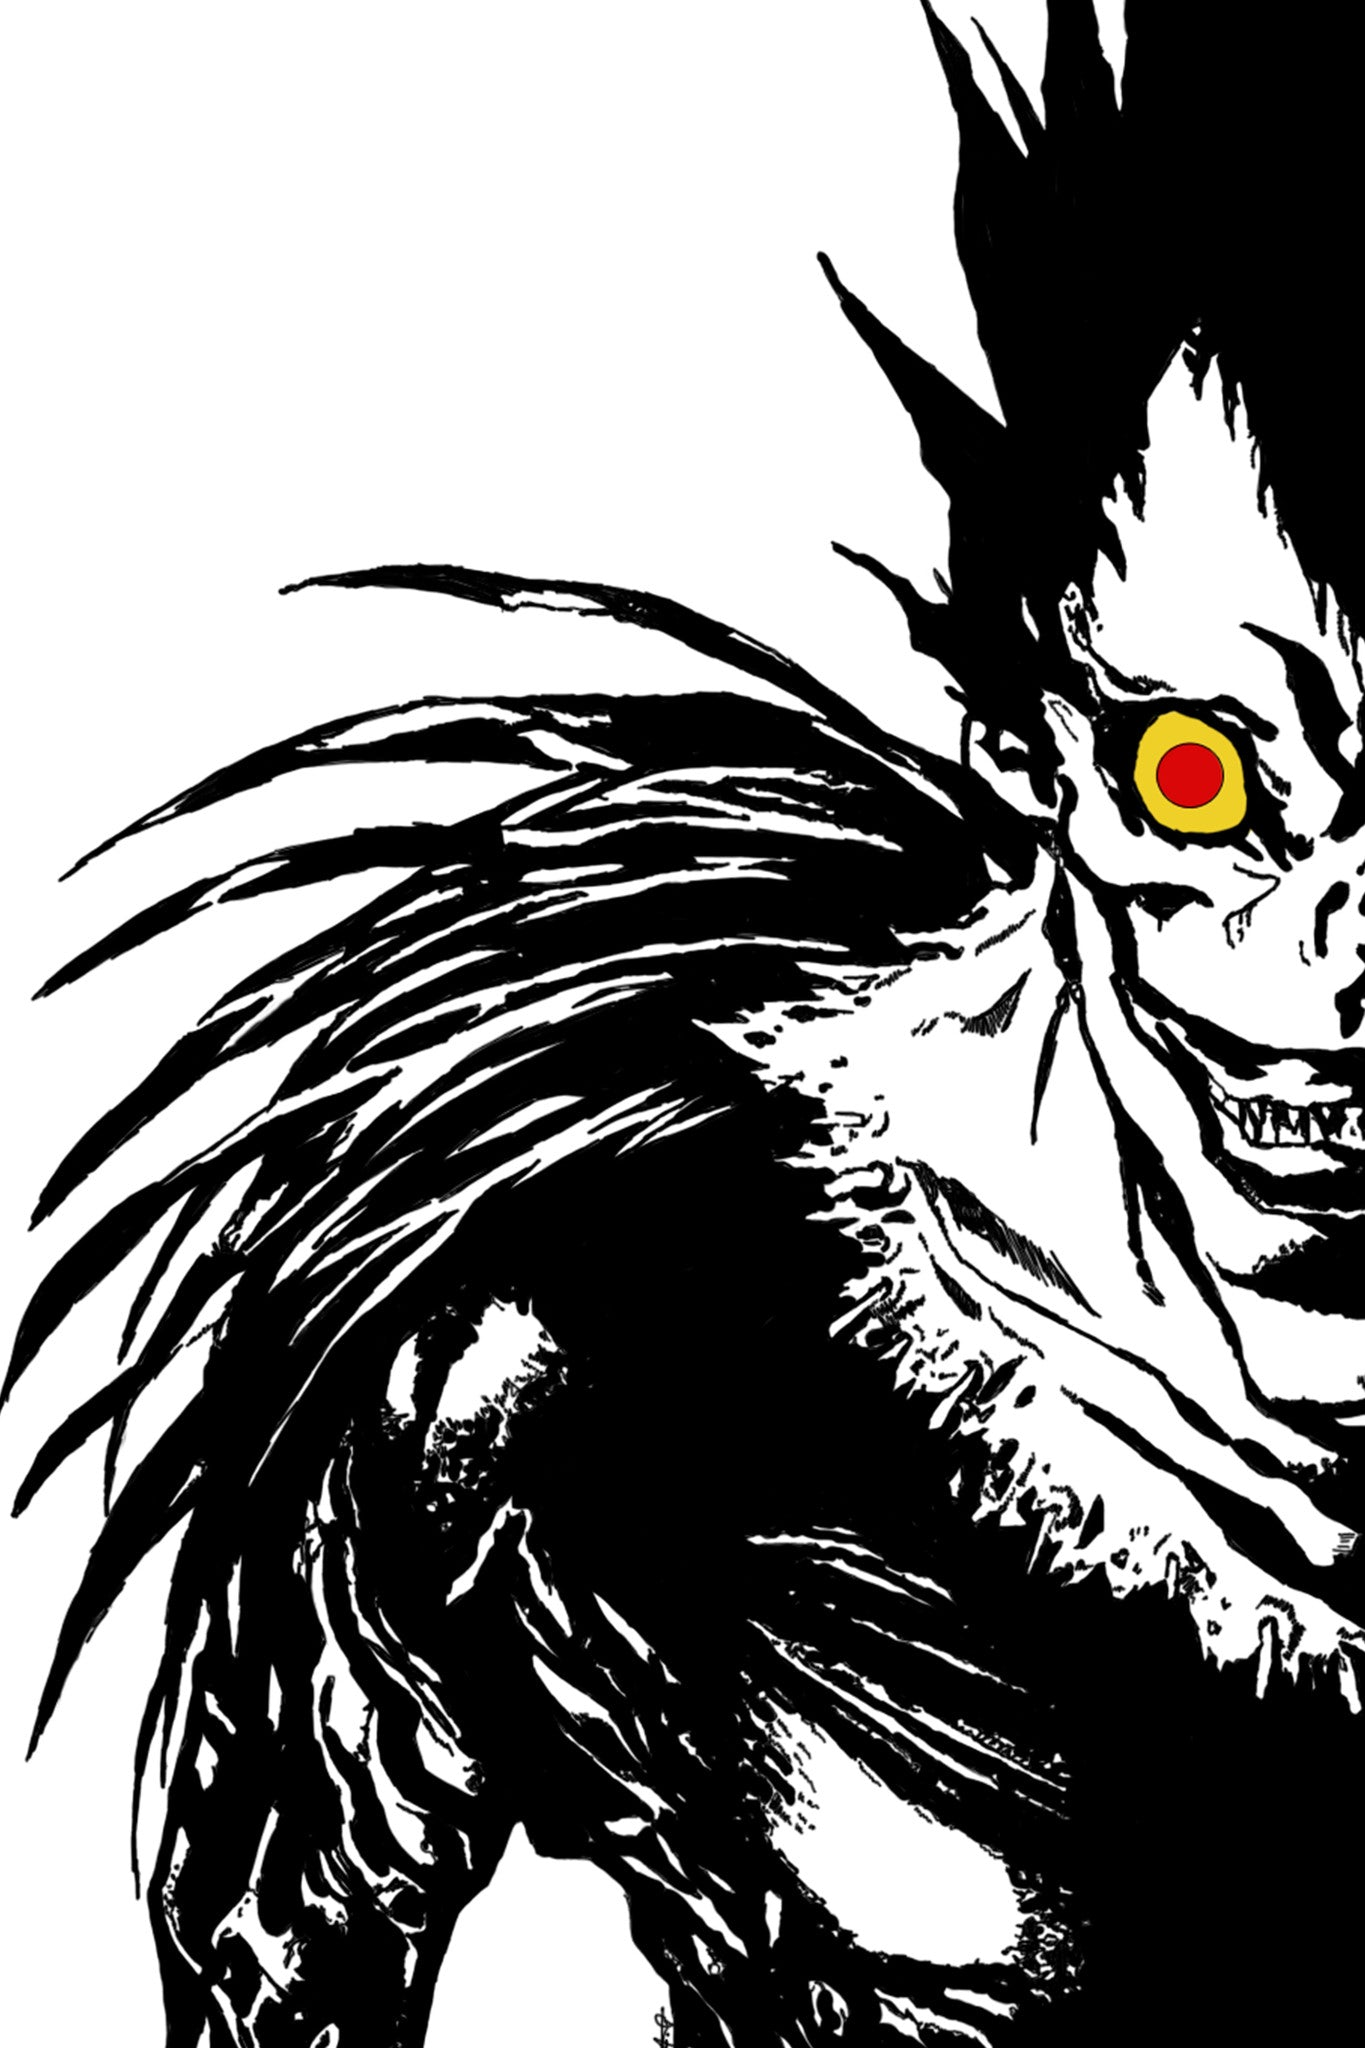 Anime Ryuk from Death Note poster in India - Silly Punter